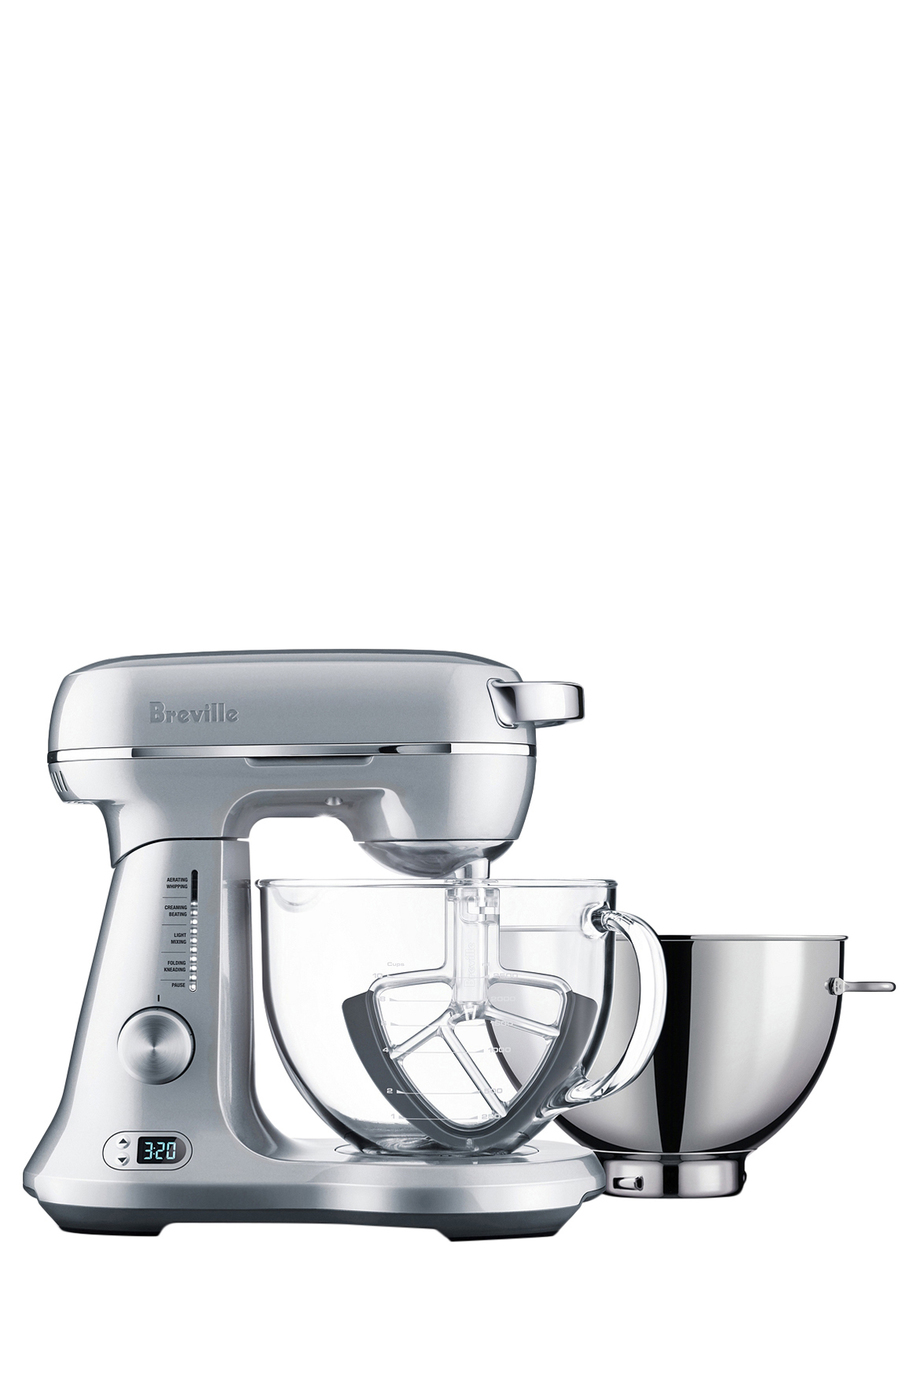 Breville BEM825BAL the Bakery Boss Mixer